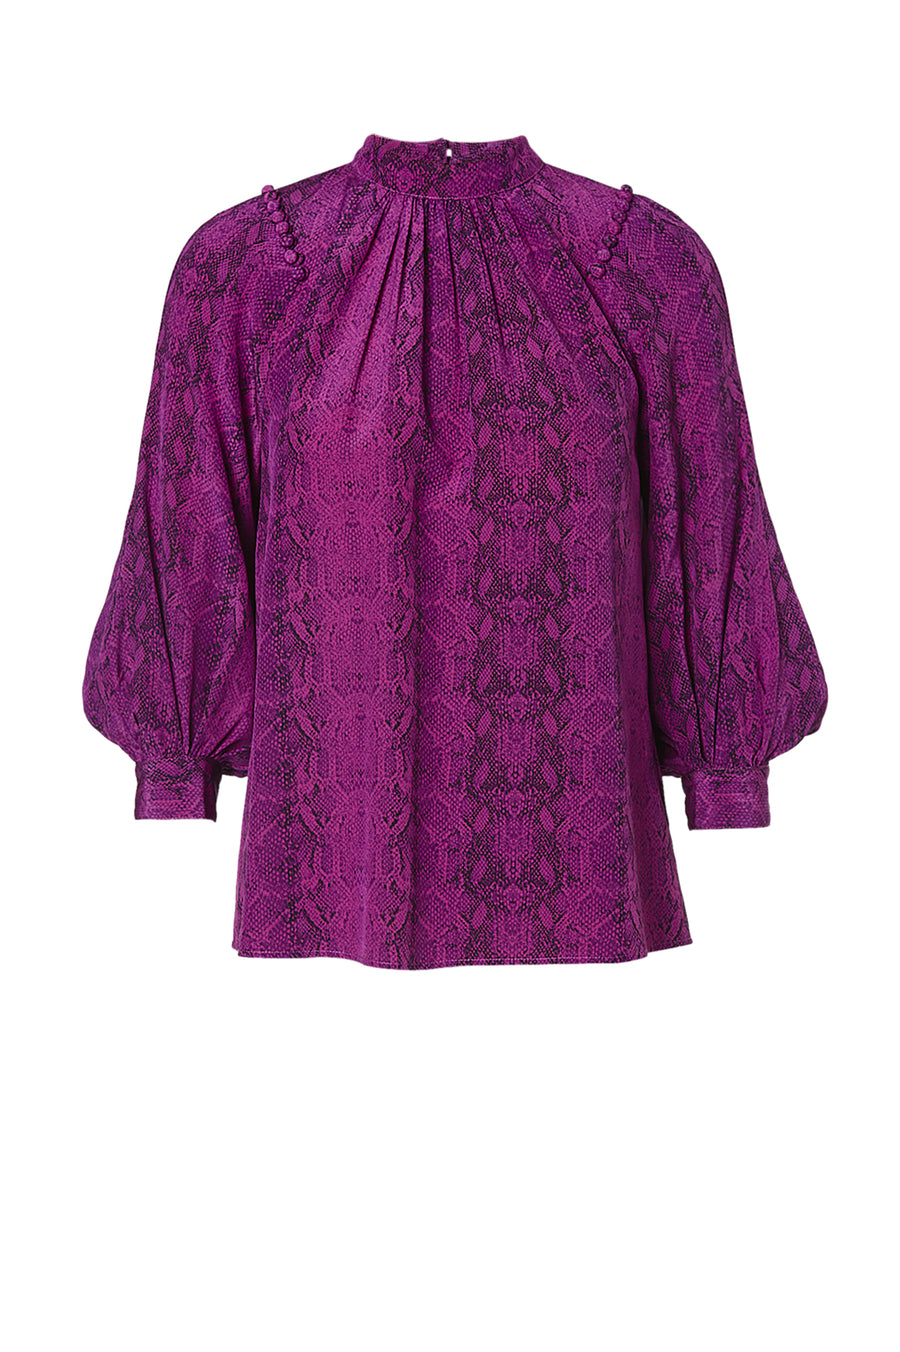 CDC REPTILE BUTTON SHOULDER BLOUSE VIOLET